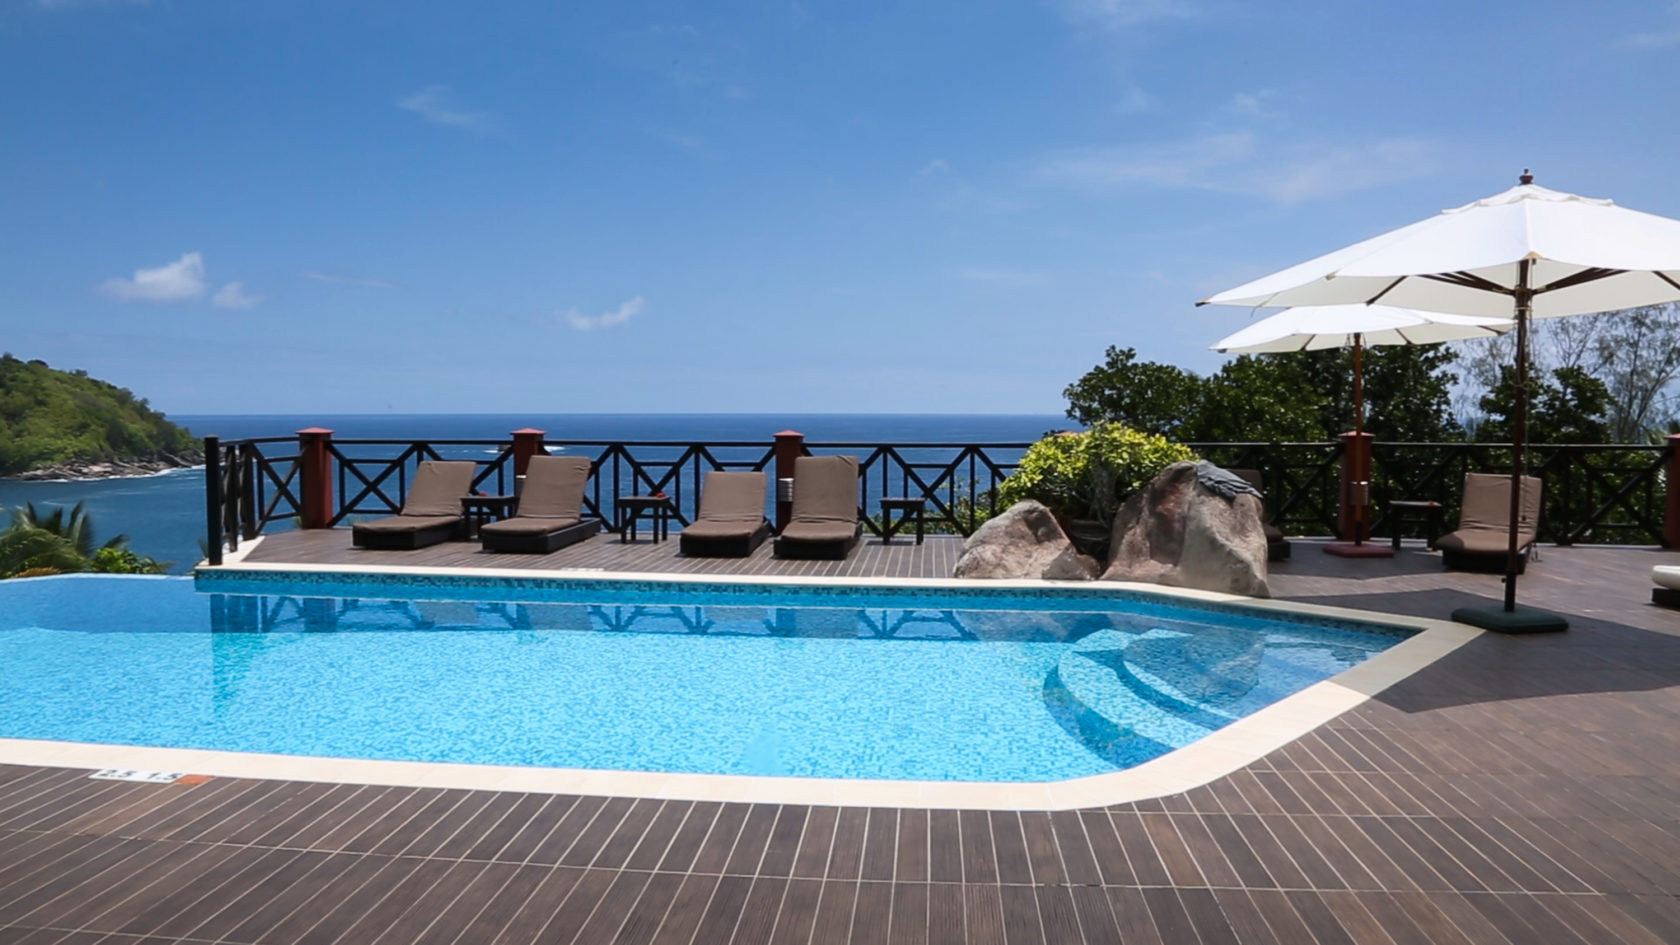 Lialdo Maison - Luxury villa Seychelles for rent, in affito, en location